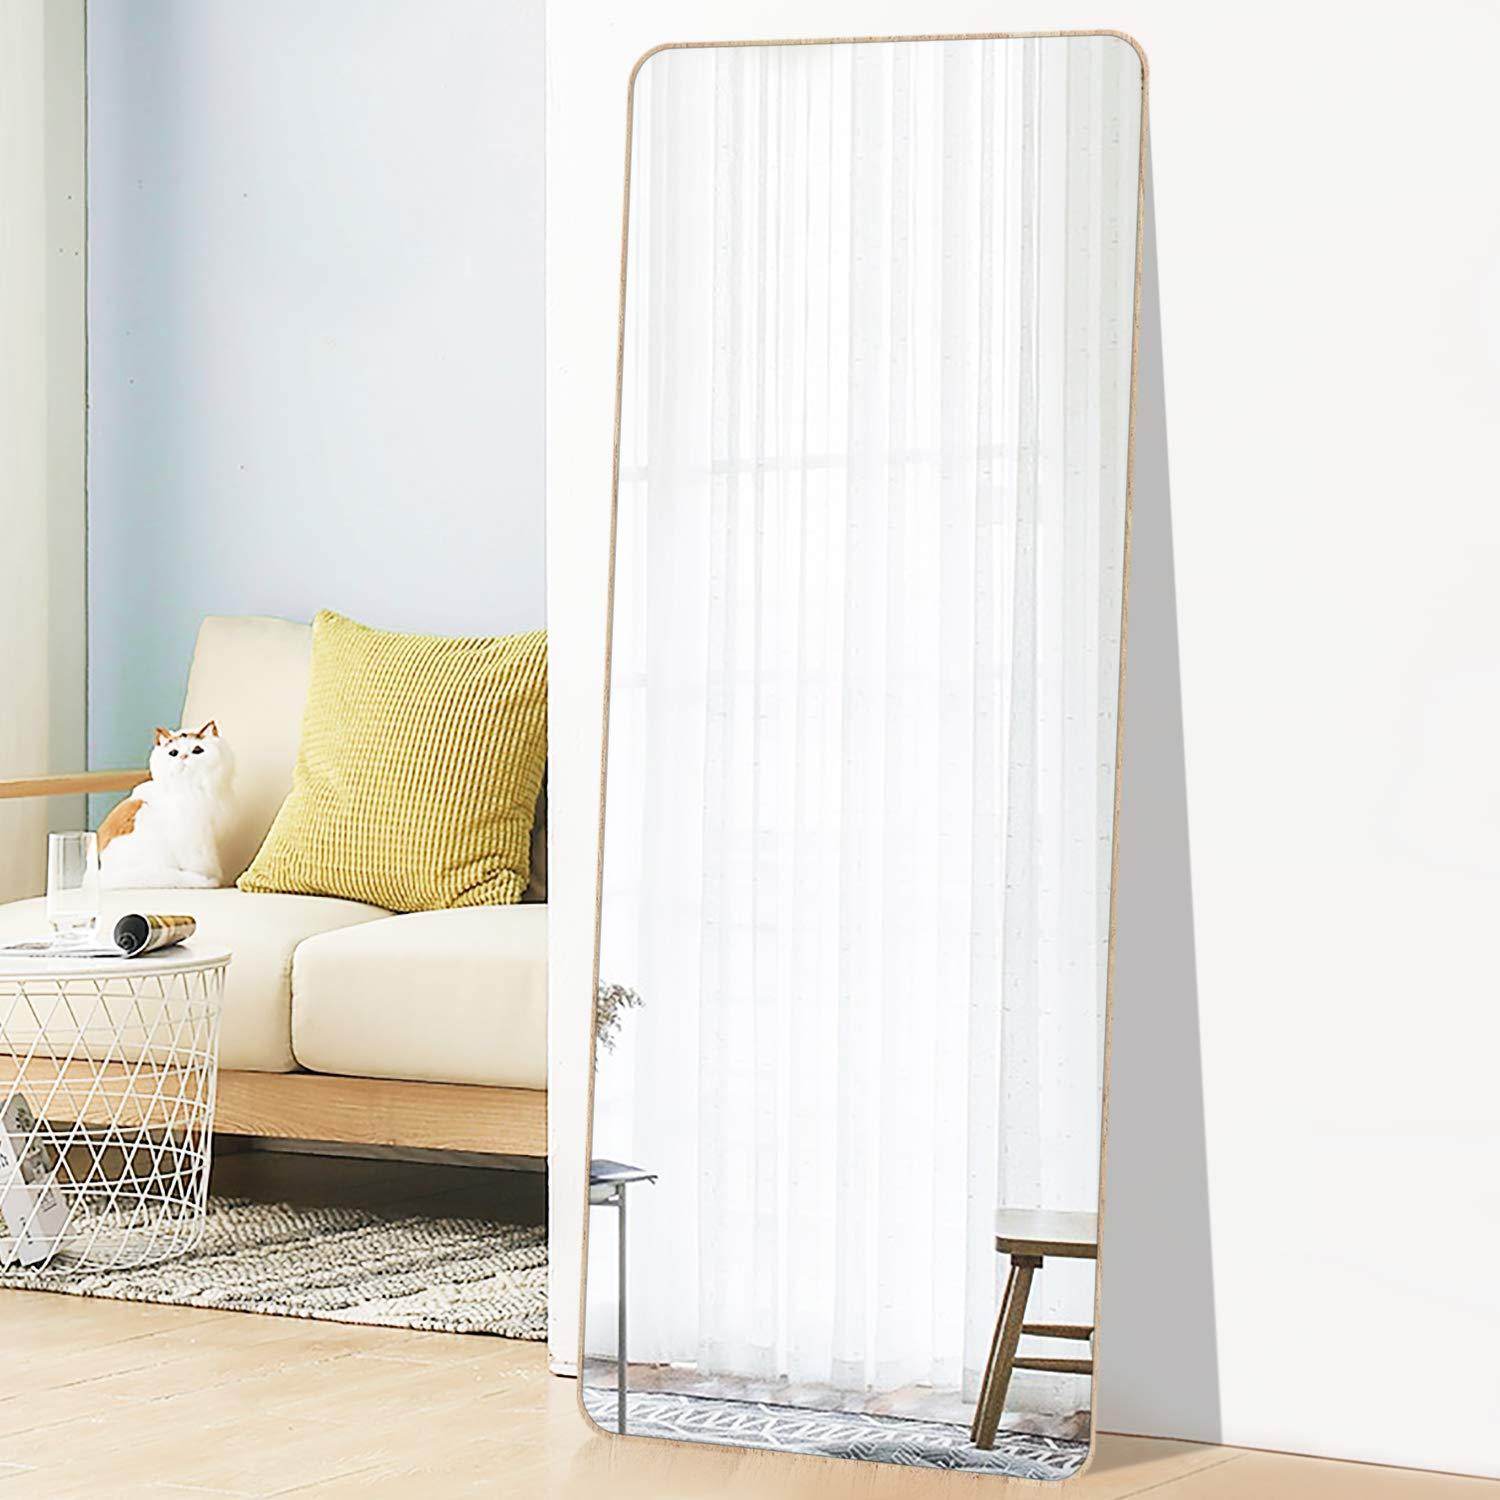 PexFix 65 x22 Full Length Floor Mirror Bedroom Dressing Mirror Standing or Hanging, Round Edge Design White